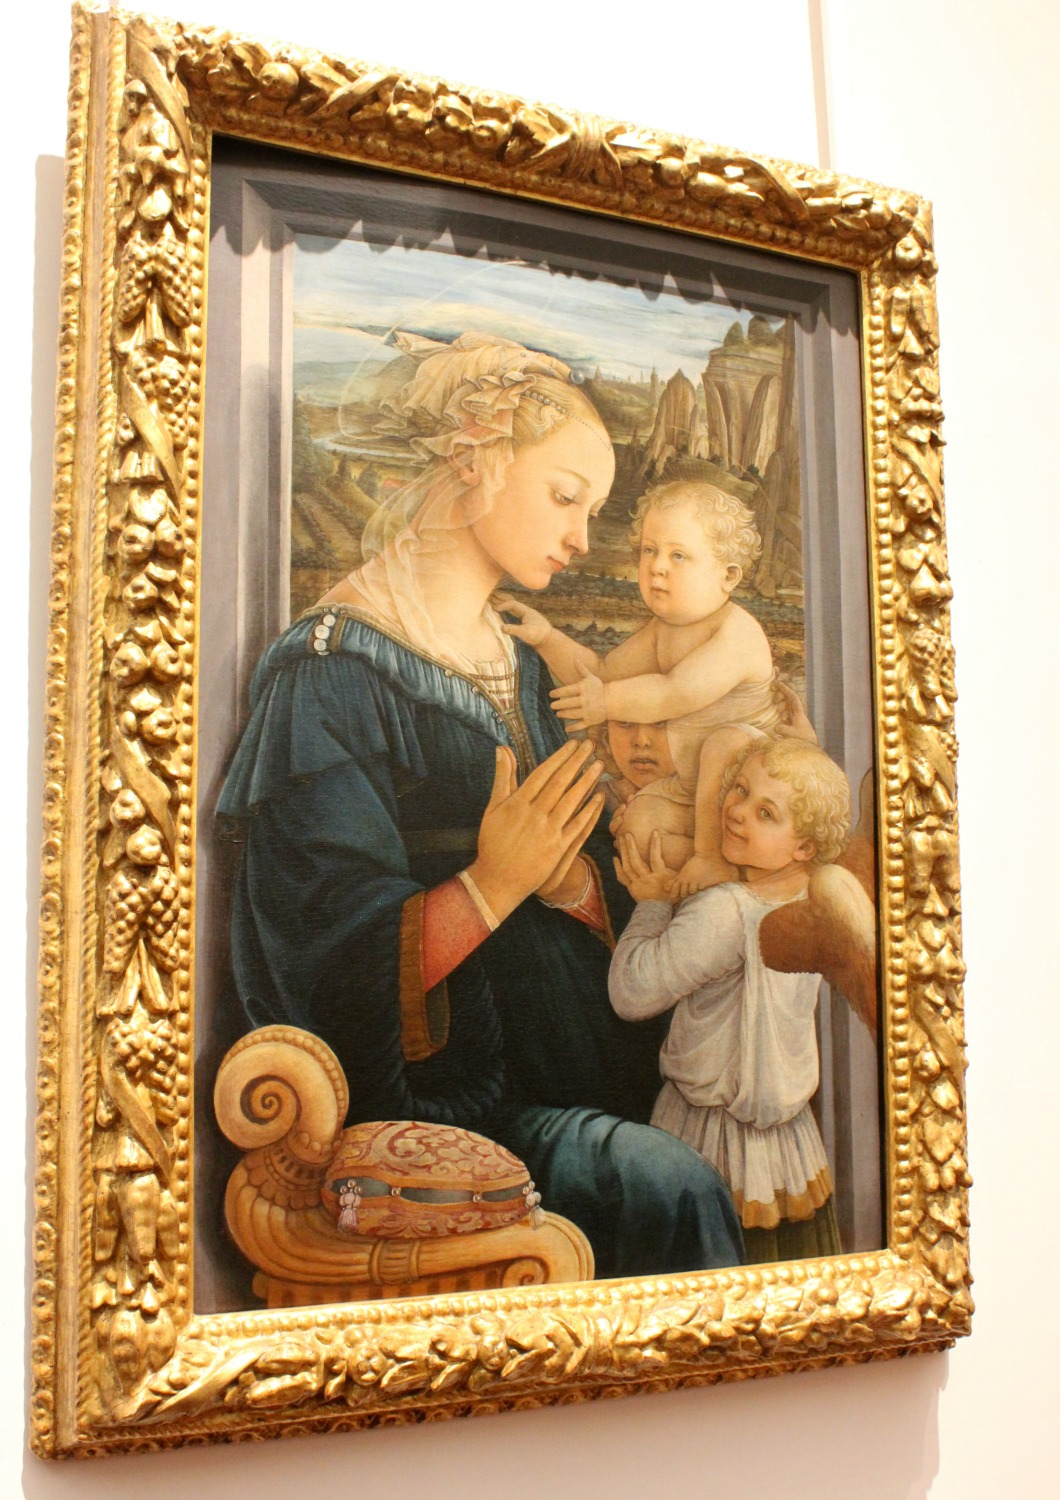 Artwork at the Uffizi gallery in Florence, Italy - my Uffizi tour with kids and gelato making day in Florence